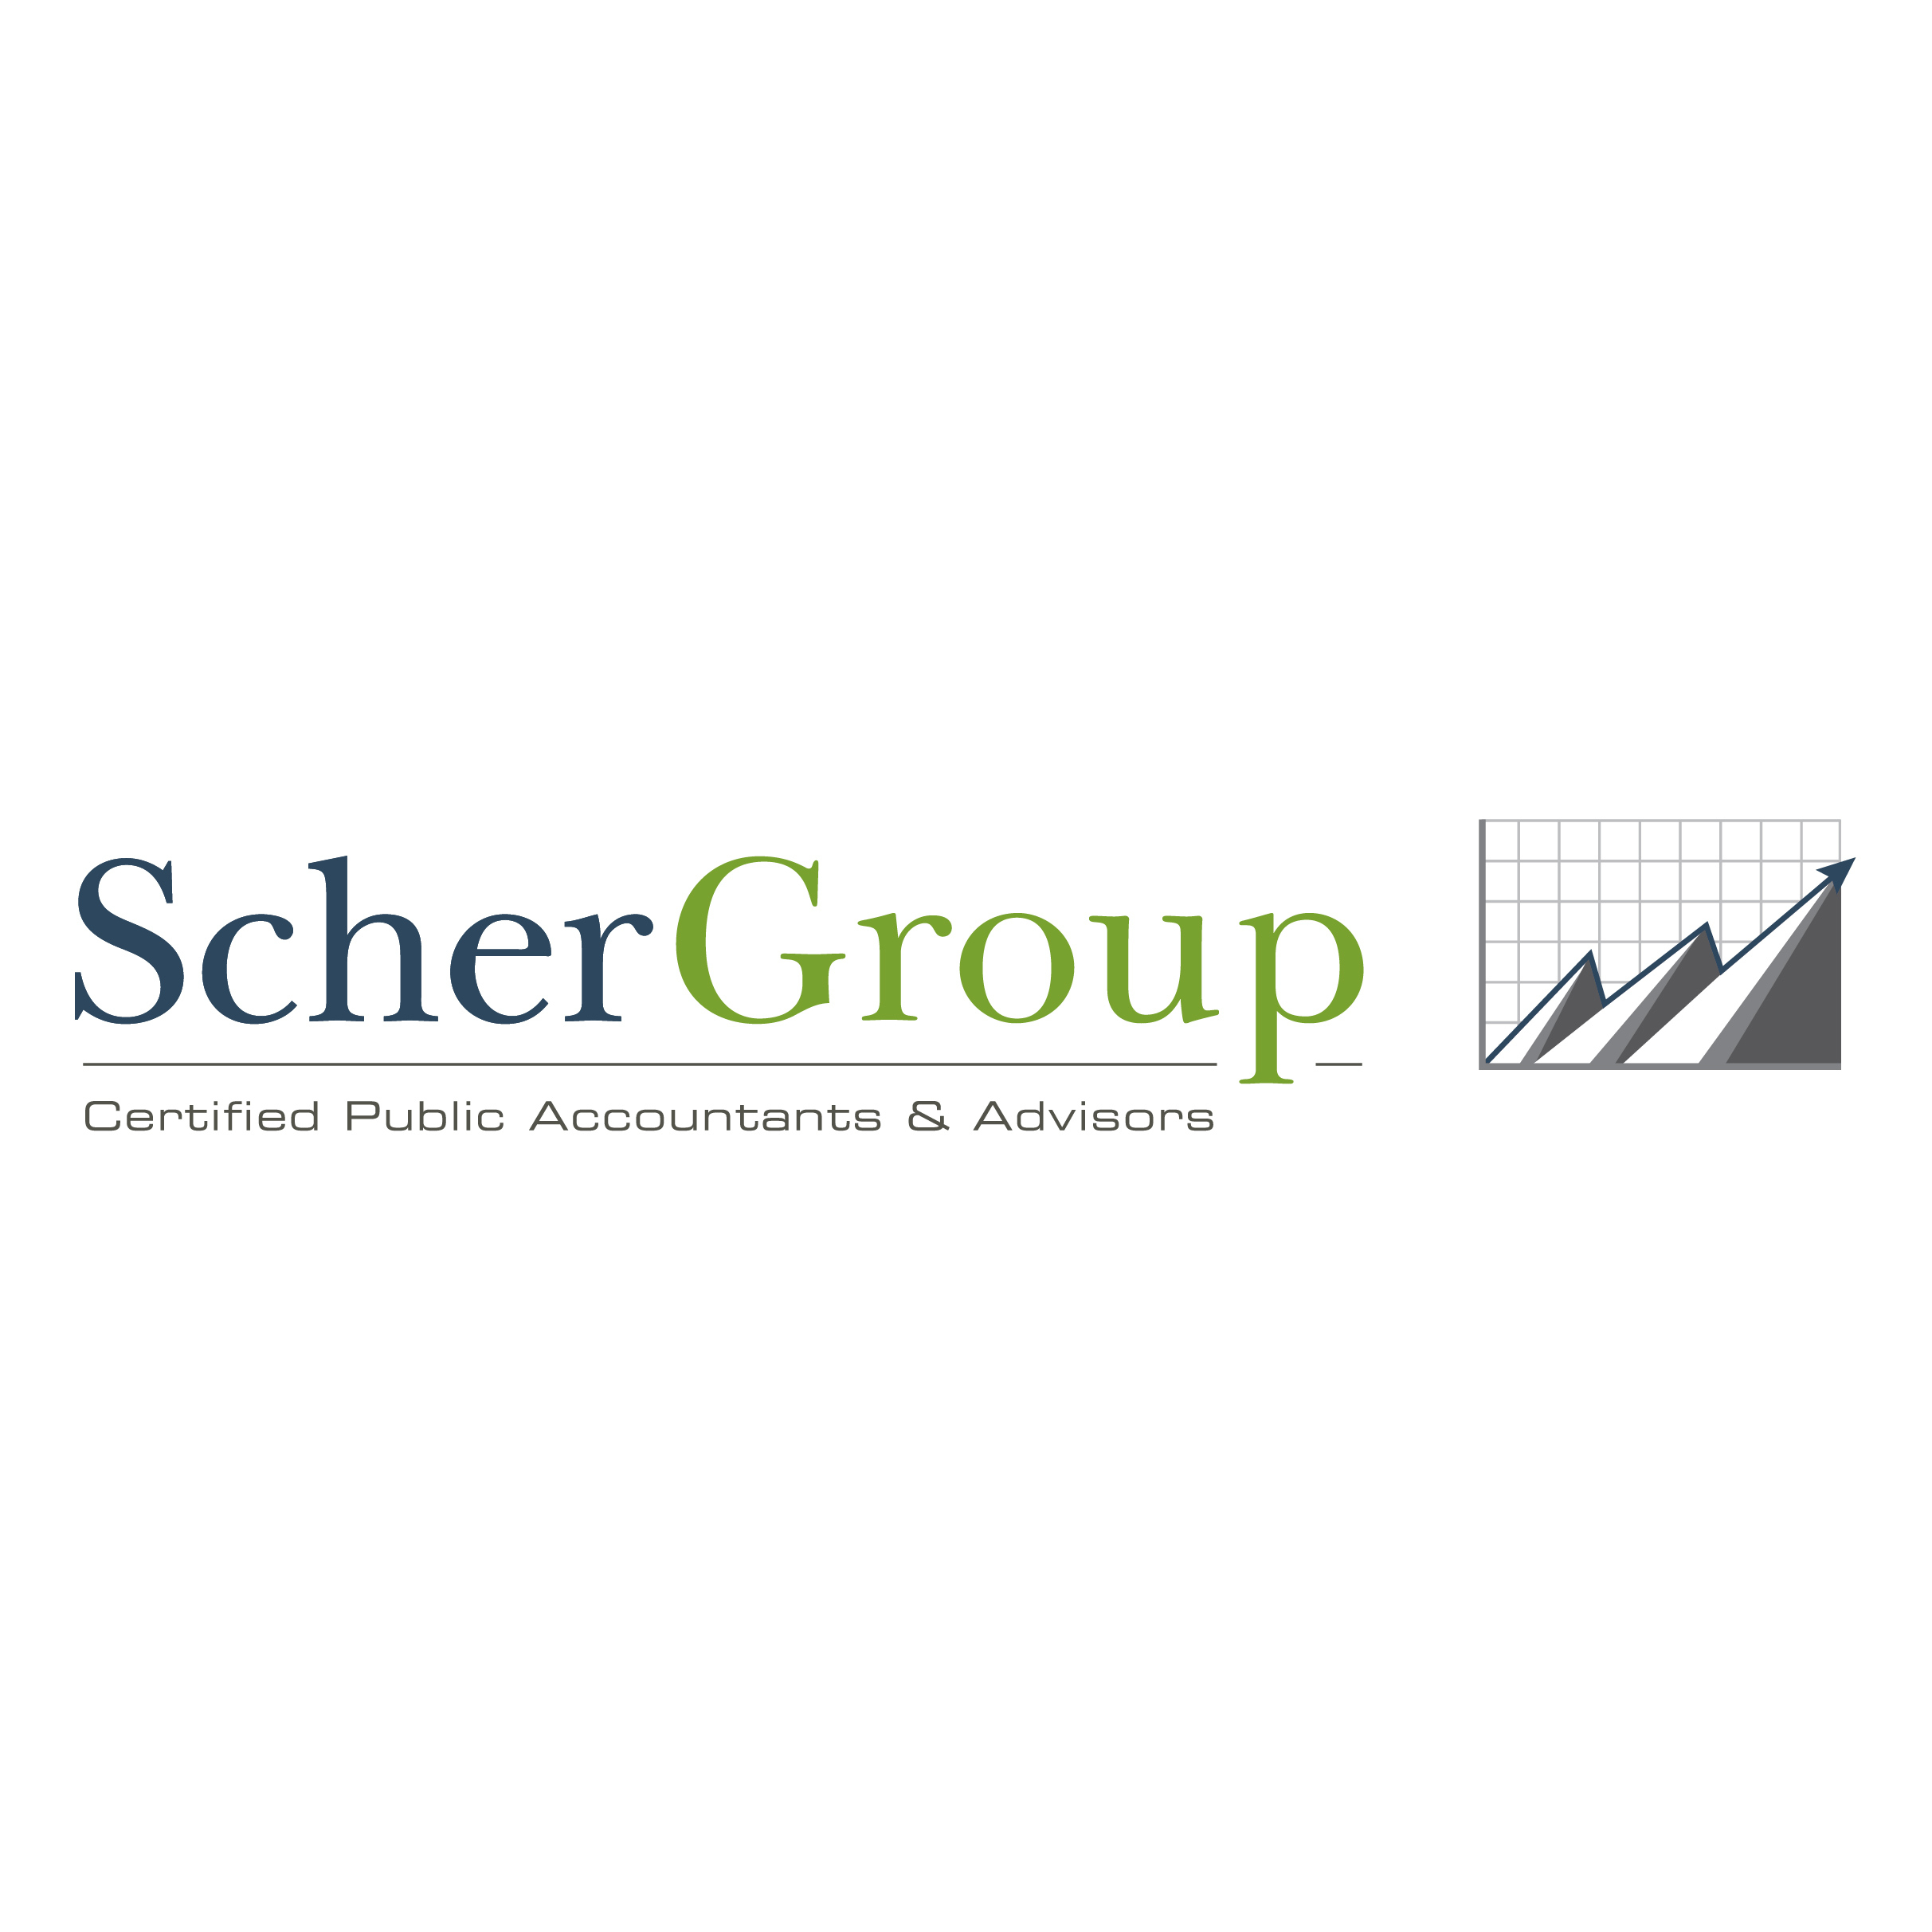 Scher Group, PLLC